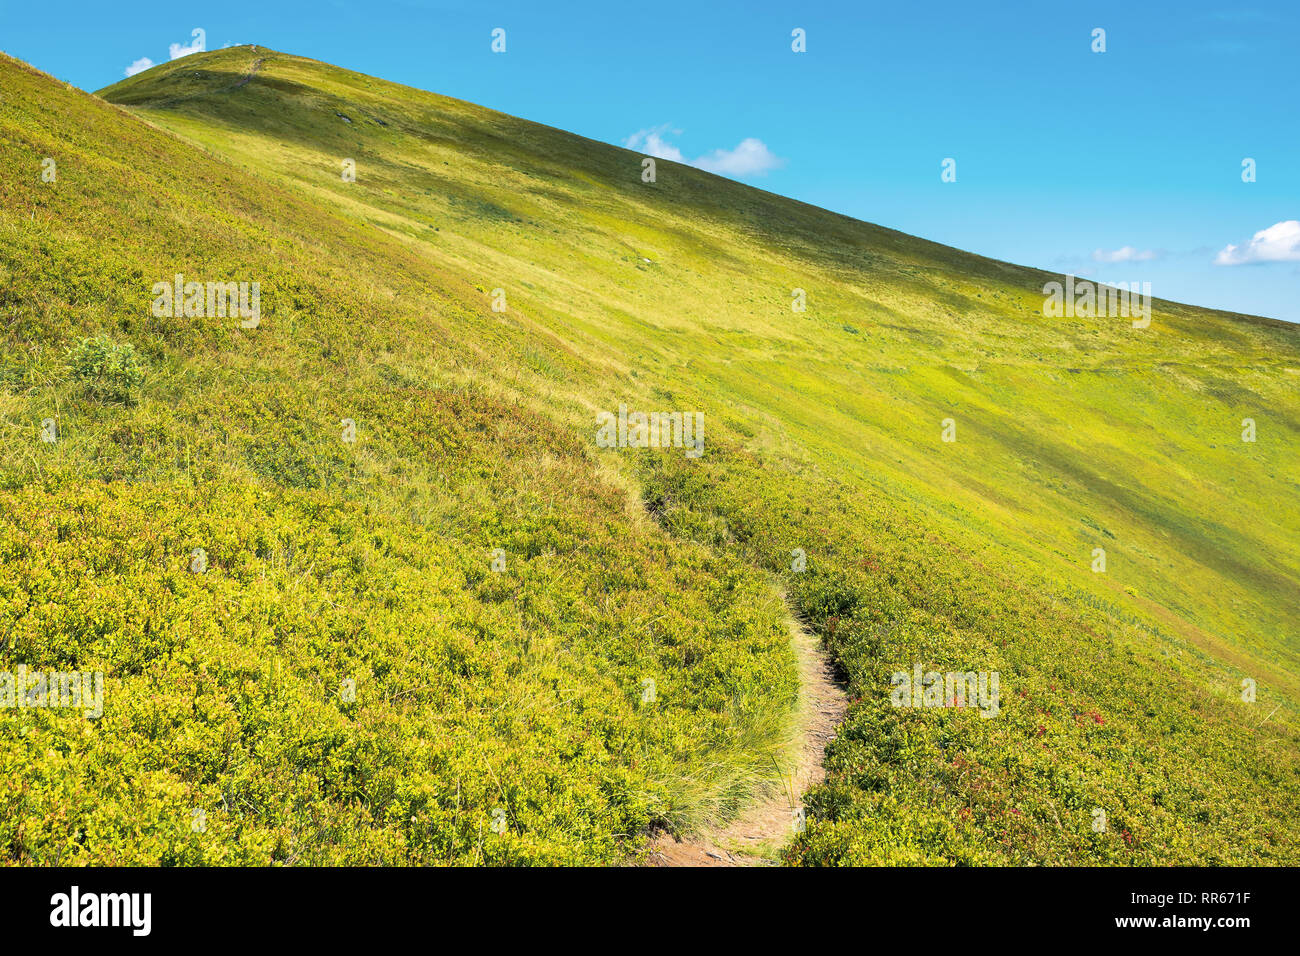 wonderful sunny scenery in mountains. grassy alpine meadow with foot path winding uphill. blue sky with fluffy clouds. beautiful carpathian landscape - Stock Image